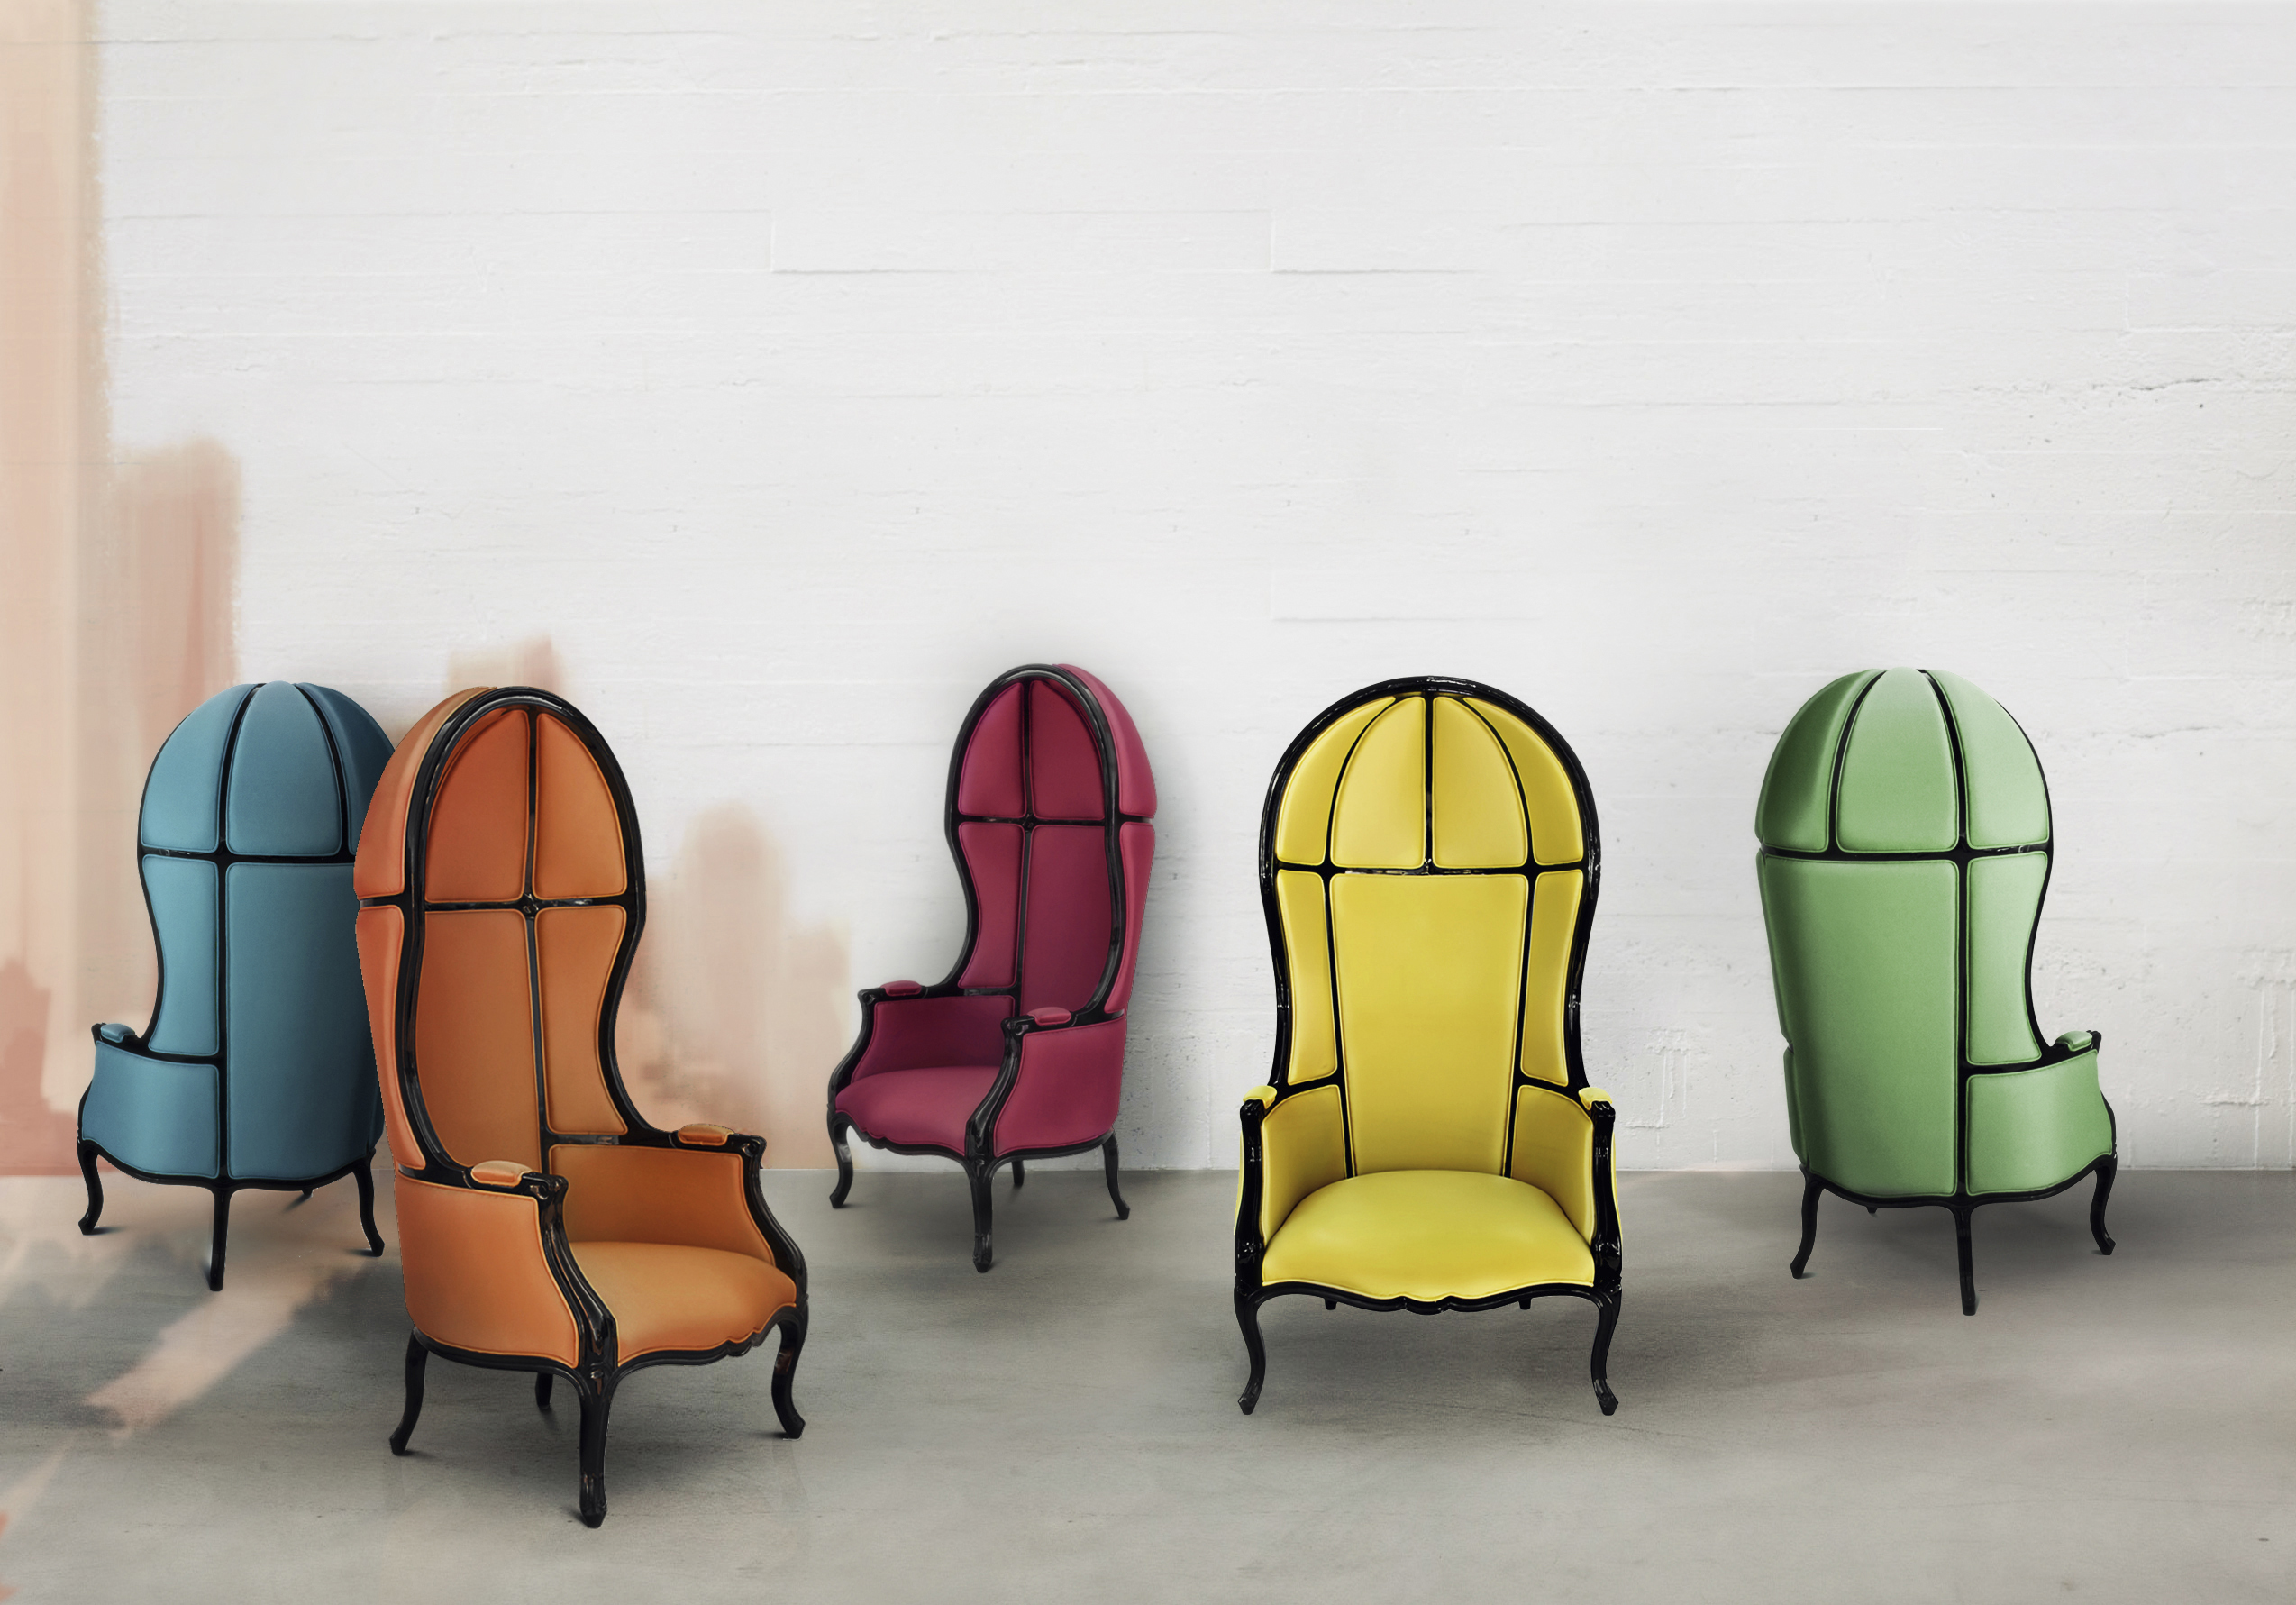 10 Amazing Colorful Chairs for A Chic Home 10 Amazing Colorful Chairs for A Chic Home brabbu ambience press 34 HR 1